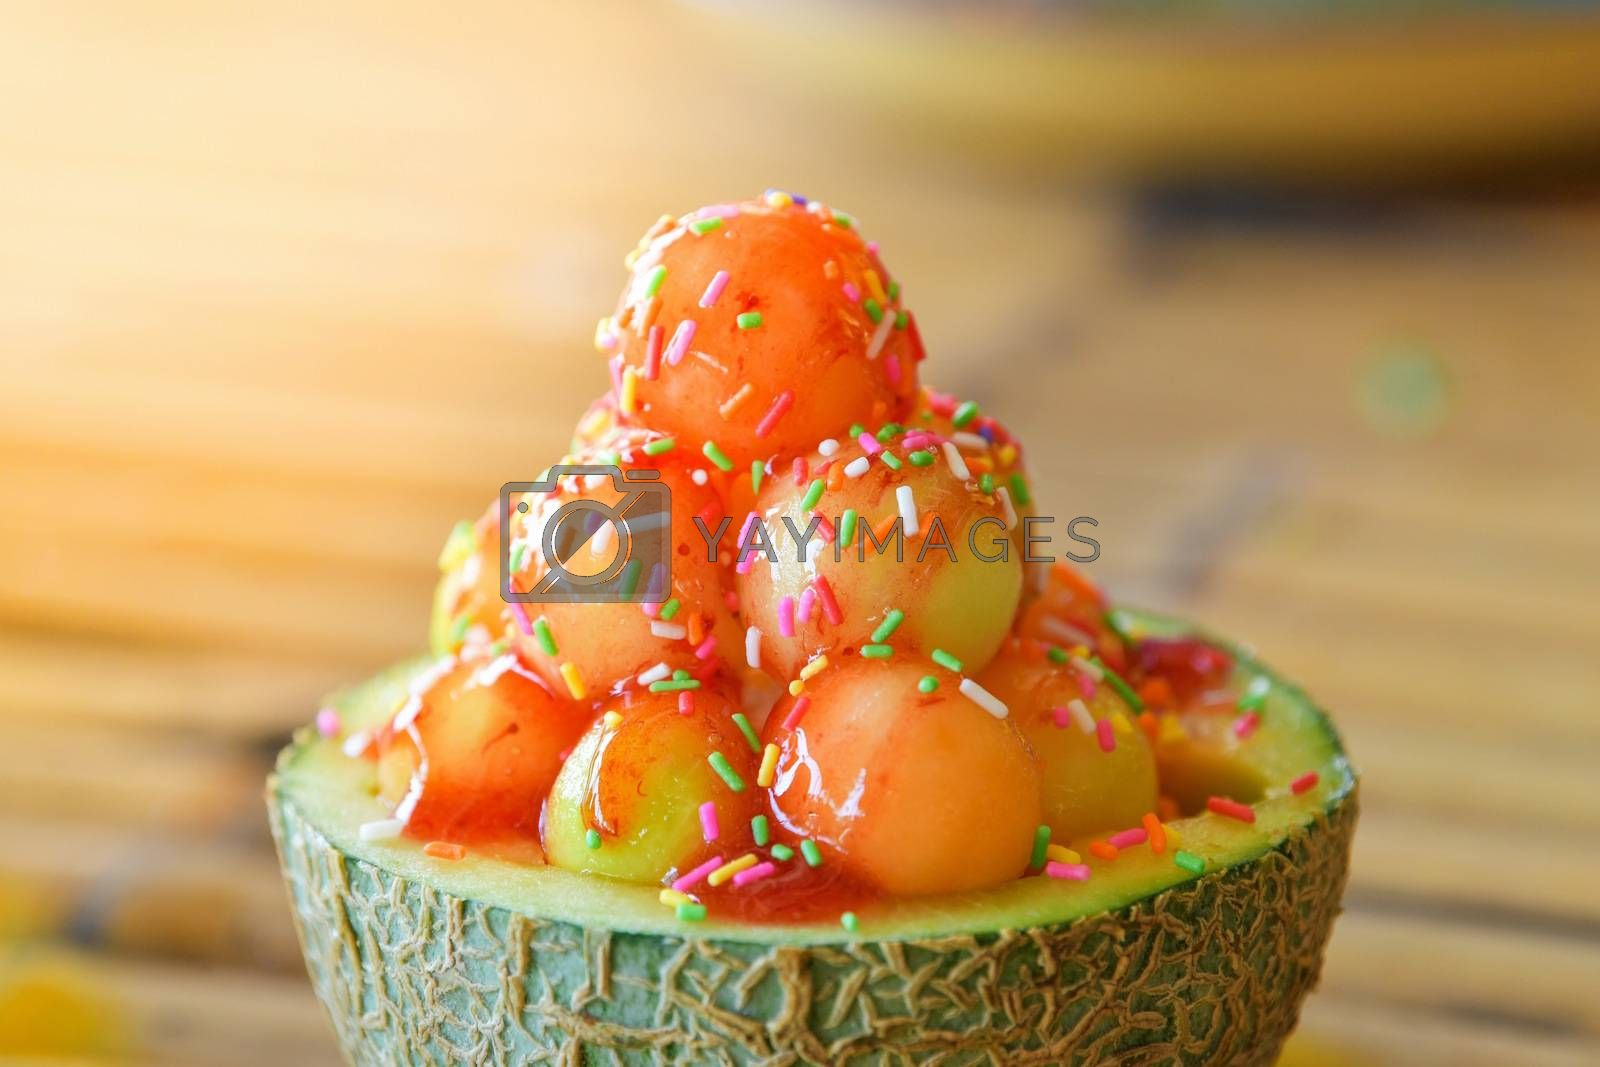 Ice cream cantaloupe with topping in cantaloupe.